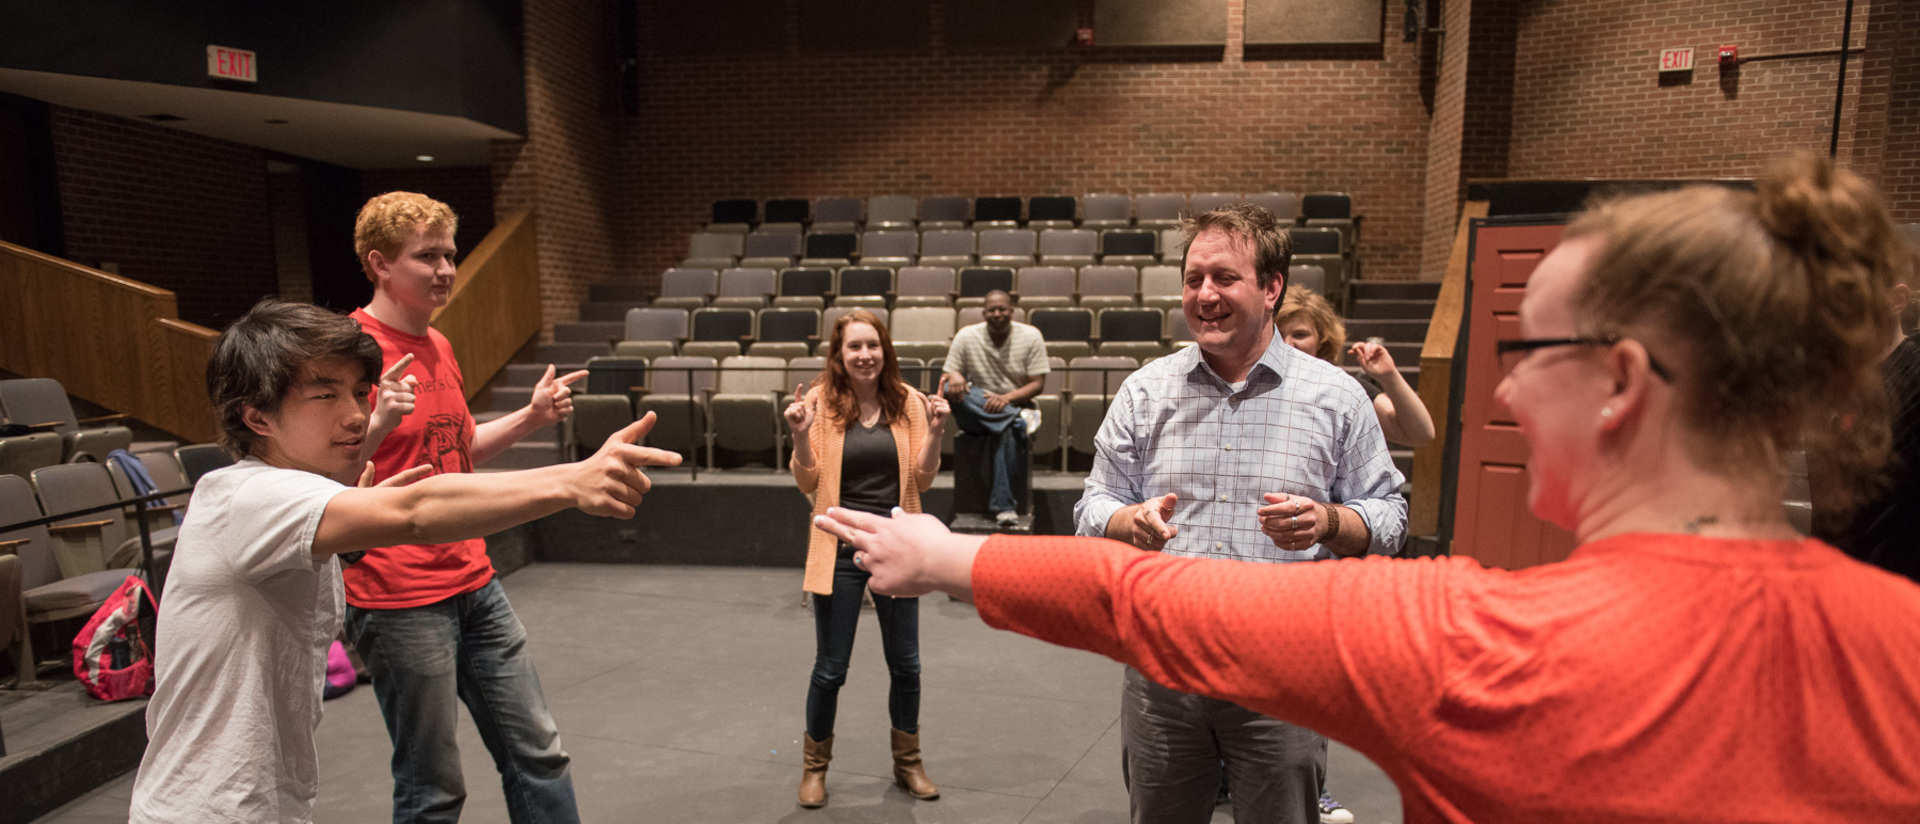 Acting class on campus at UW-Eau Claire